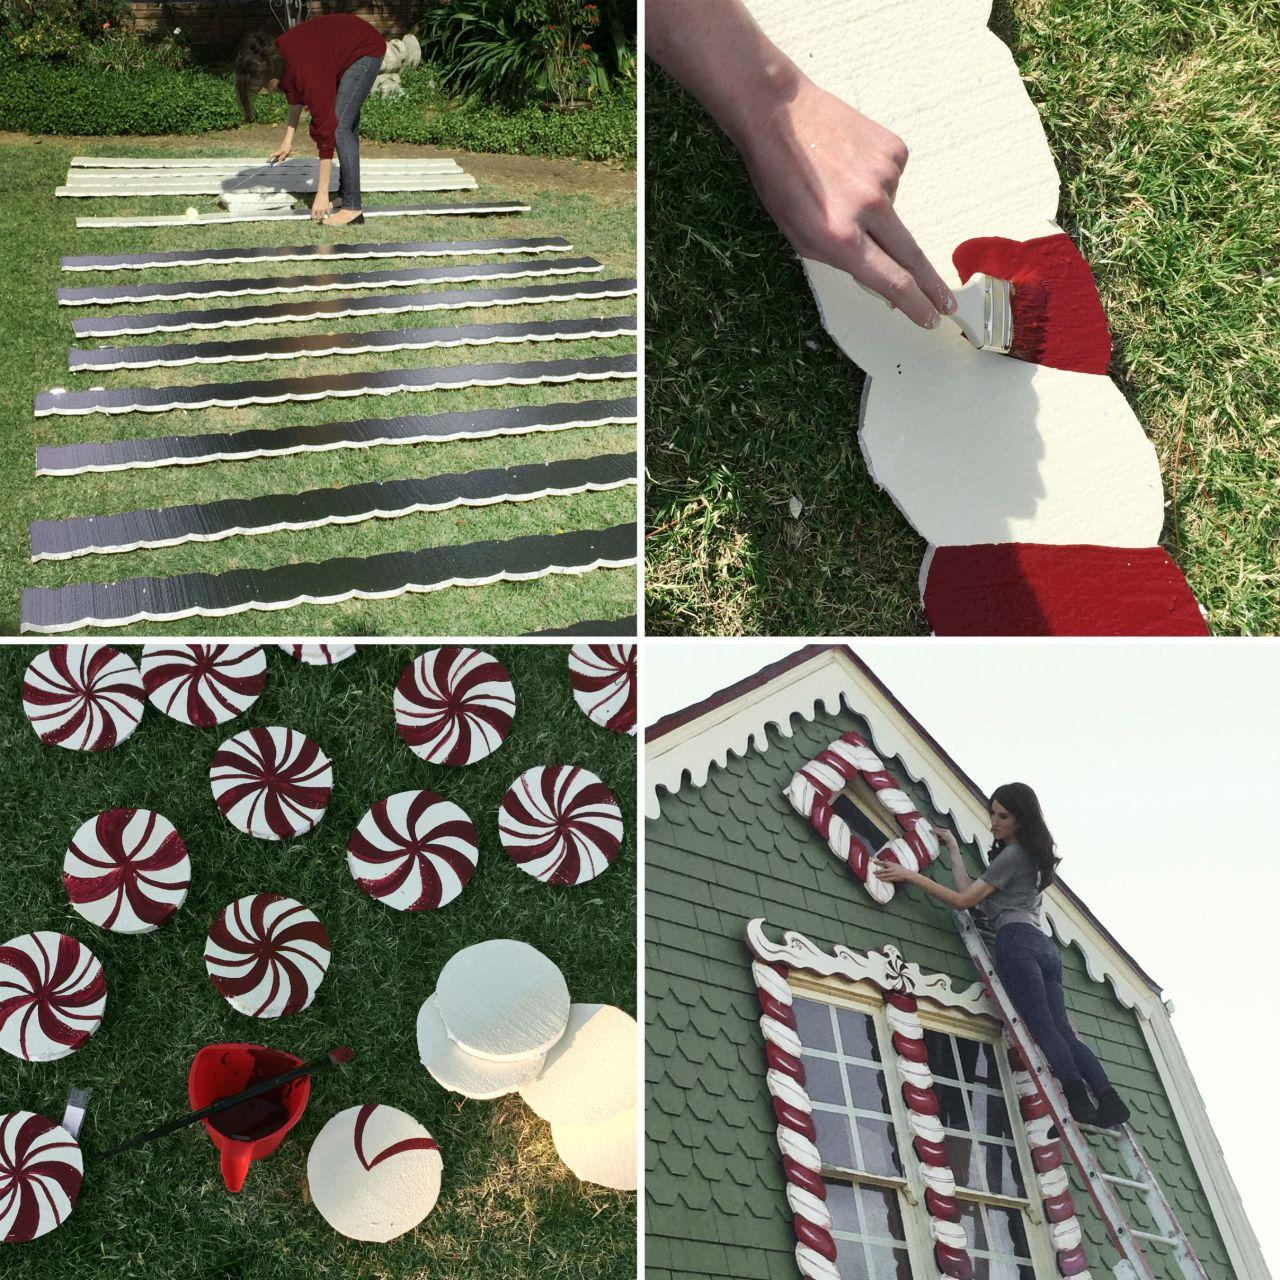 """<p>The painting of the candy canes and peppermint candies, on the other hand, was the fun part of the endeavor. (Photo:<a href=""""http://www.christinehmcconnell.com/"""" rel=""""nofollow noopener"""" target=""""_blank"""" data-ylk=""""slk:Christine McConnell"""" class=""""link rapid-noclick-resp""""> Christine McConnell</a>) <br></p>"""